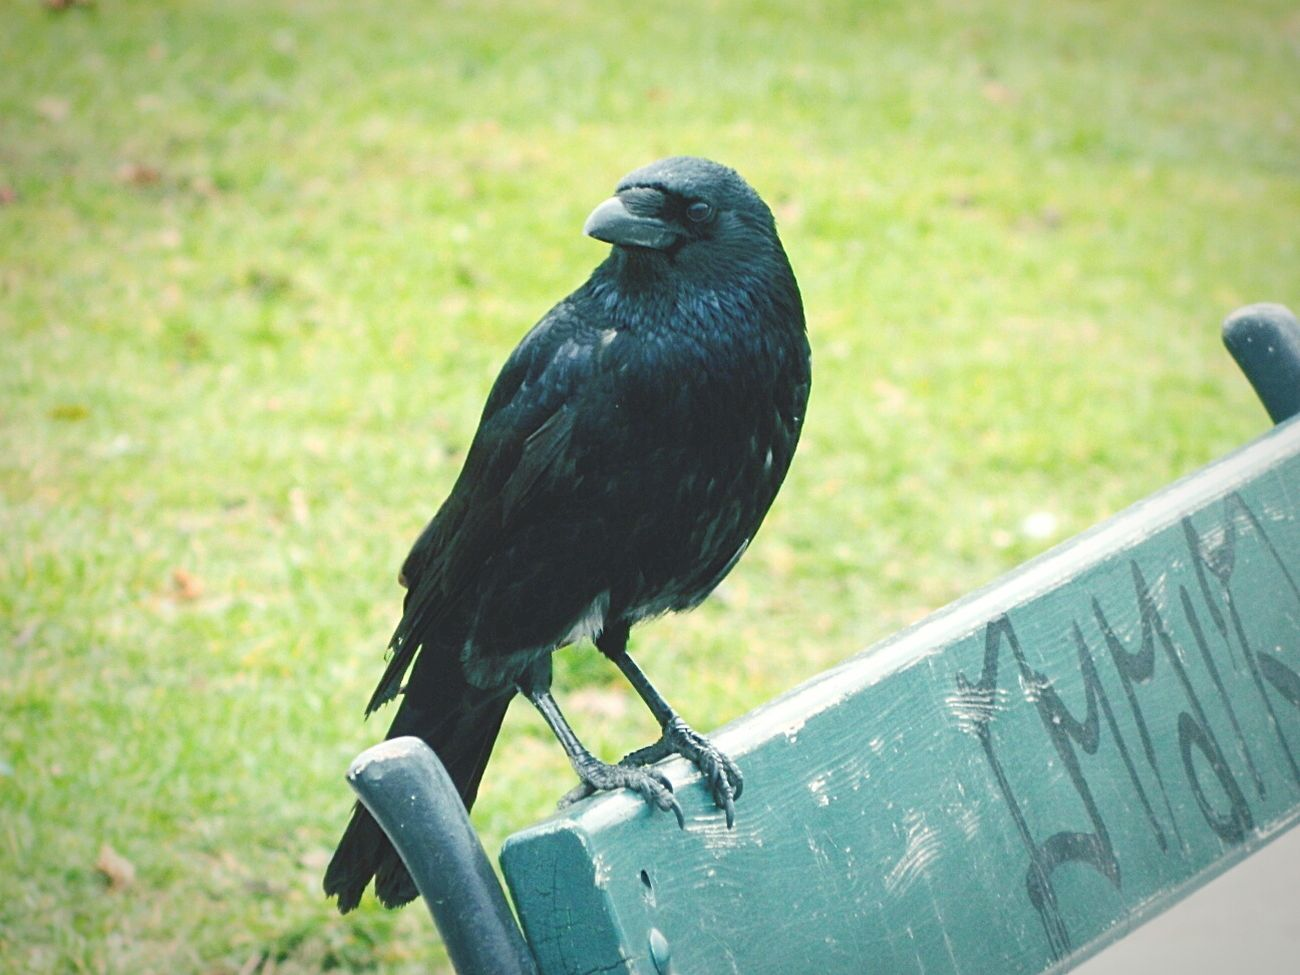 austria Wien 2014 Wien City Hello World Taking Photos A Walk In The Park Openroad Nautral  Monchrome Animal Photography Crows #freetoedit